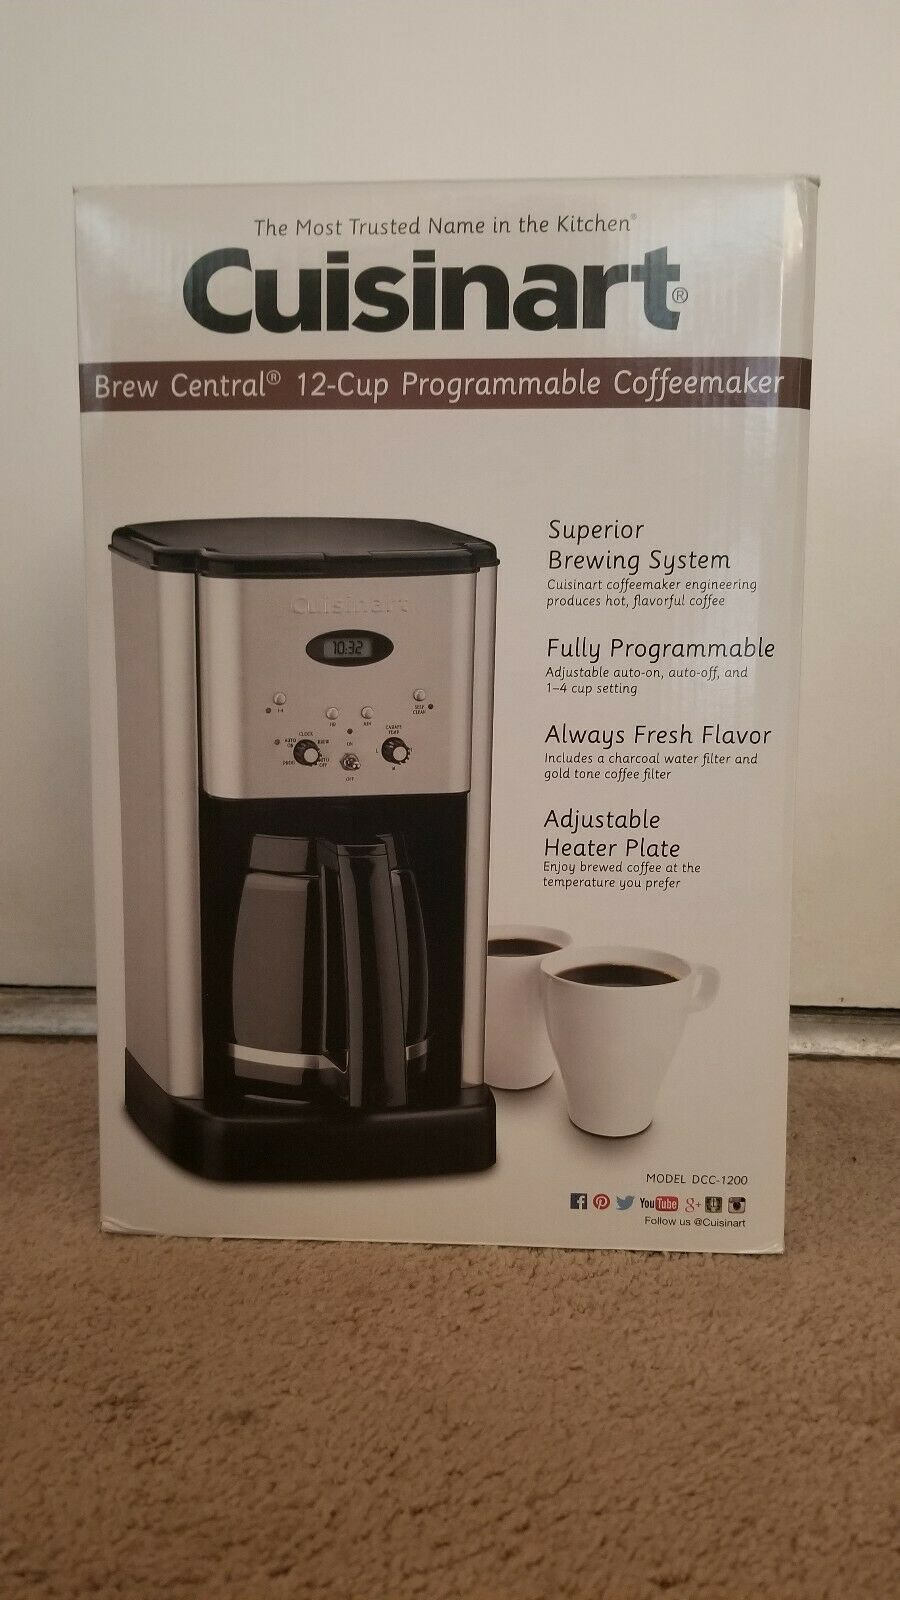 New Cuisinart Dcc 1200 Brew Central 12 Cup Programmable Coffeemaker Black Silver In 2020 Coffee Maker Cuisinart Coffee Maker Coffee Brewing